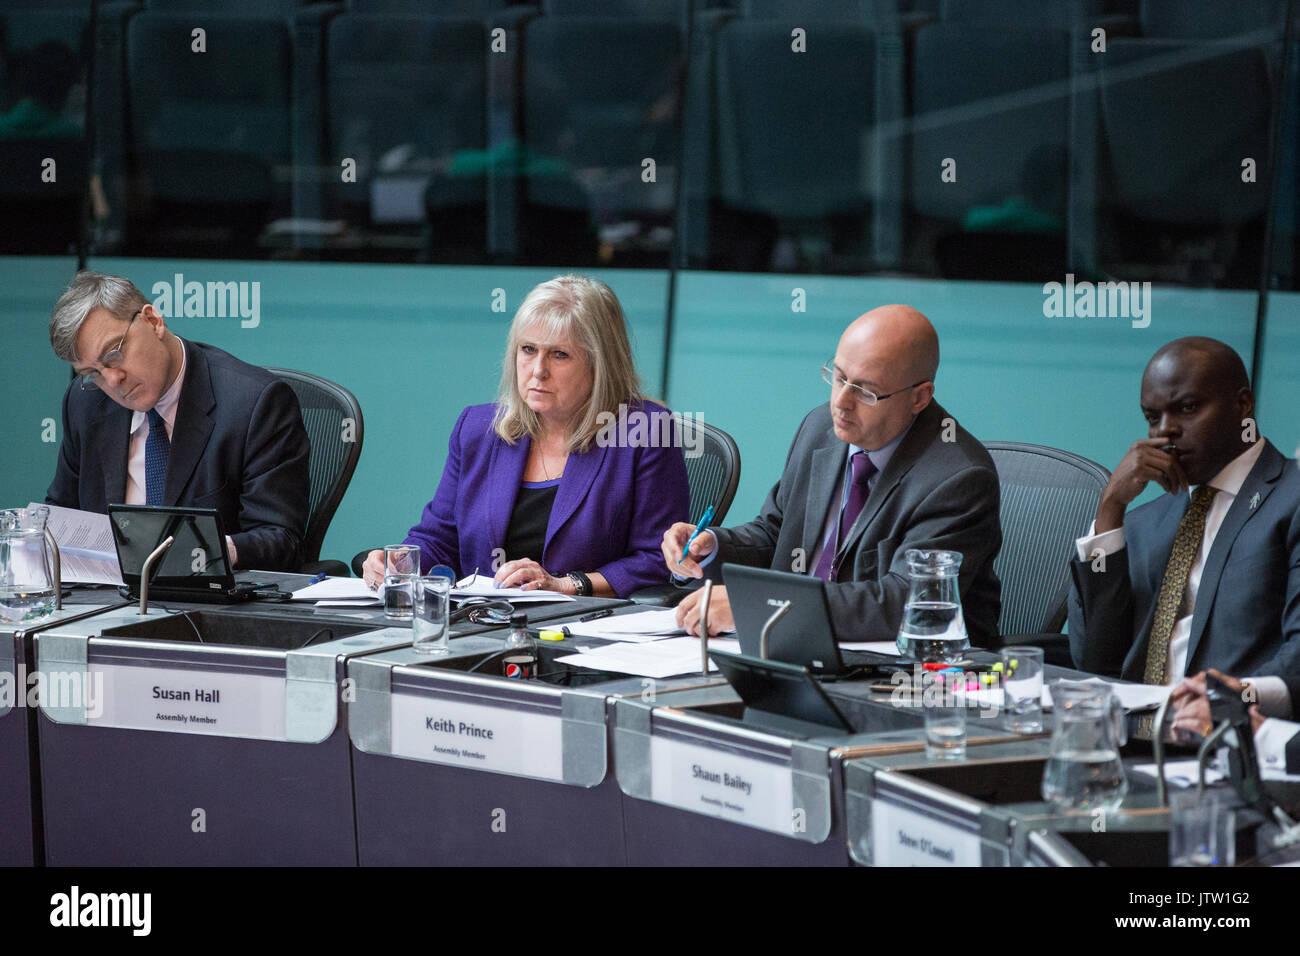 London, UK. 10th August, 2017. London Assembly Members Tony Devenish, Susan Hall, Keith Prince and Shaun Bailey listen to Mayor of London Sadiq Khan responding to questions during Mayor's Question Time at City Hall. Among topics discussed were: acid attacks, social housing, expenditure on fire and police services, 4G coverage on underground trains and noise from overnight underground trains. Credit: Mark Kerrison/Alamy Live News - Stock Image